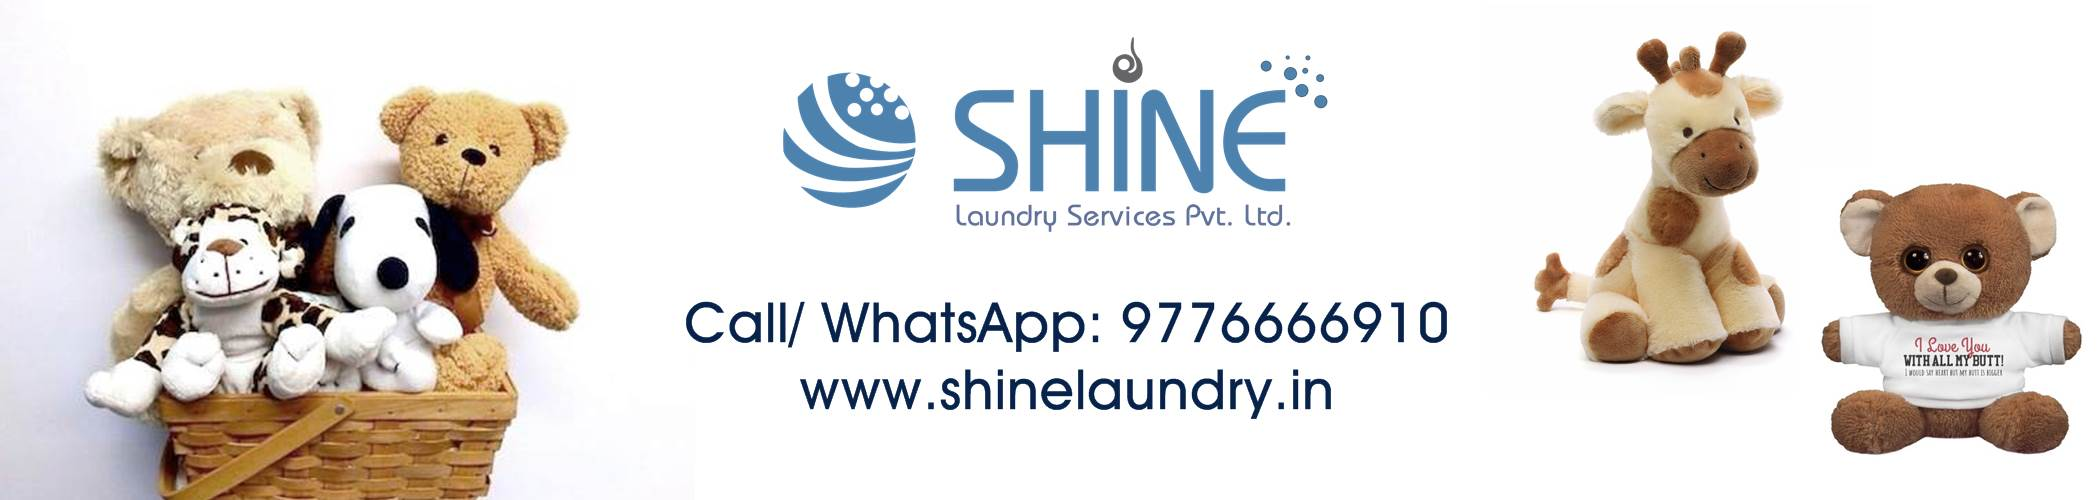 Toy Laundry in Bhubaneswar – Shine Laundry book now Wouldn′t it be great to make sure kids stay hygienic with toys they play? Fur toys and soft toys can accumulate a lot of dust that cannot be seen with a naked eye. Making sure toys are clean is a part of keeping your kid healthy.